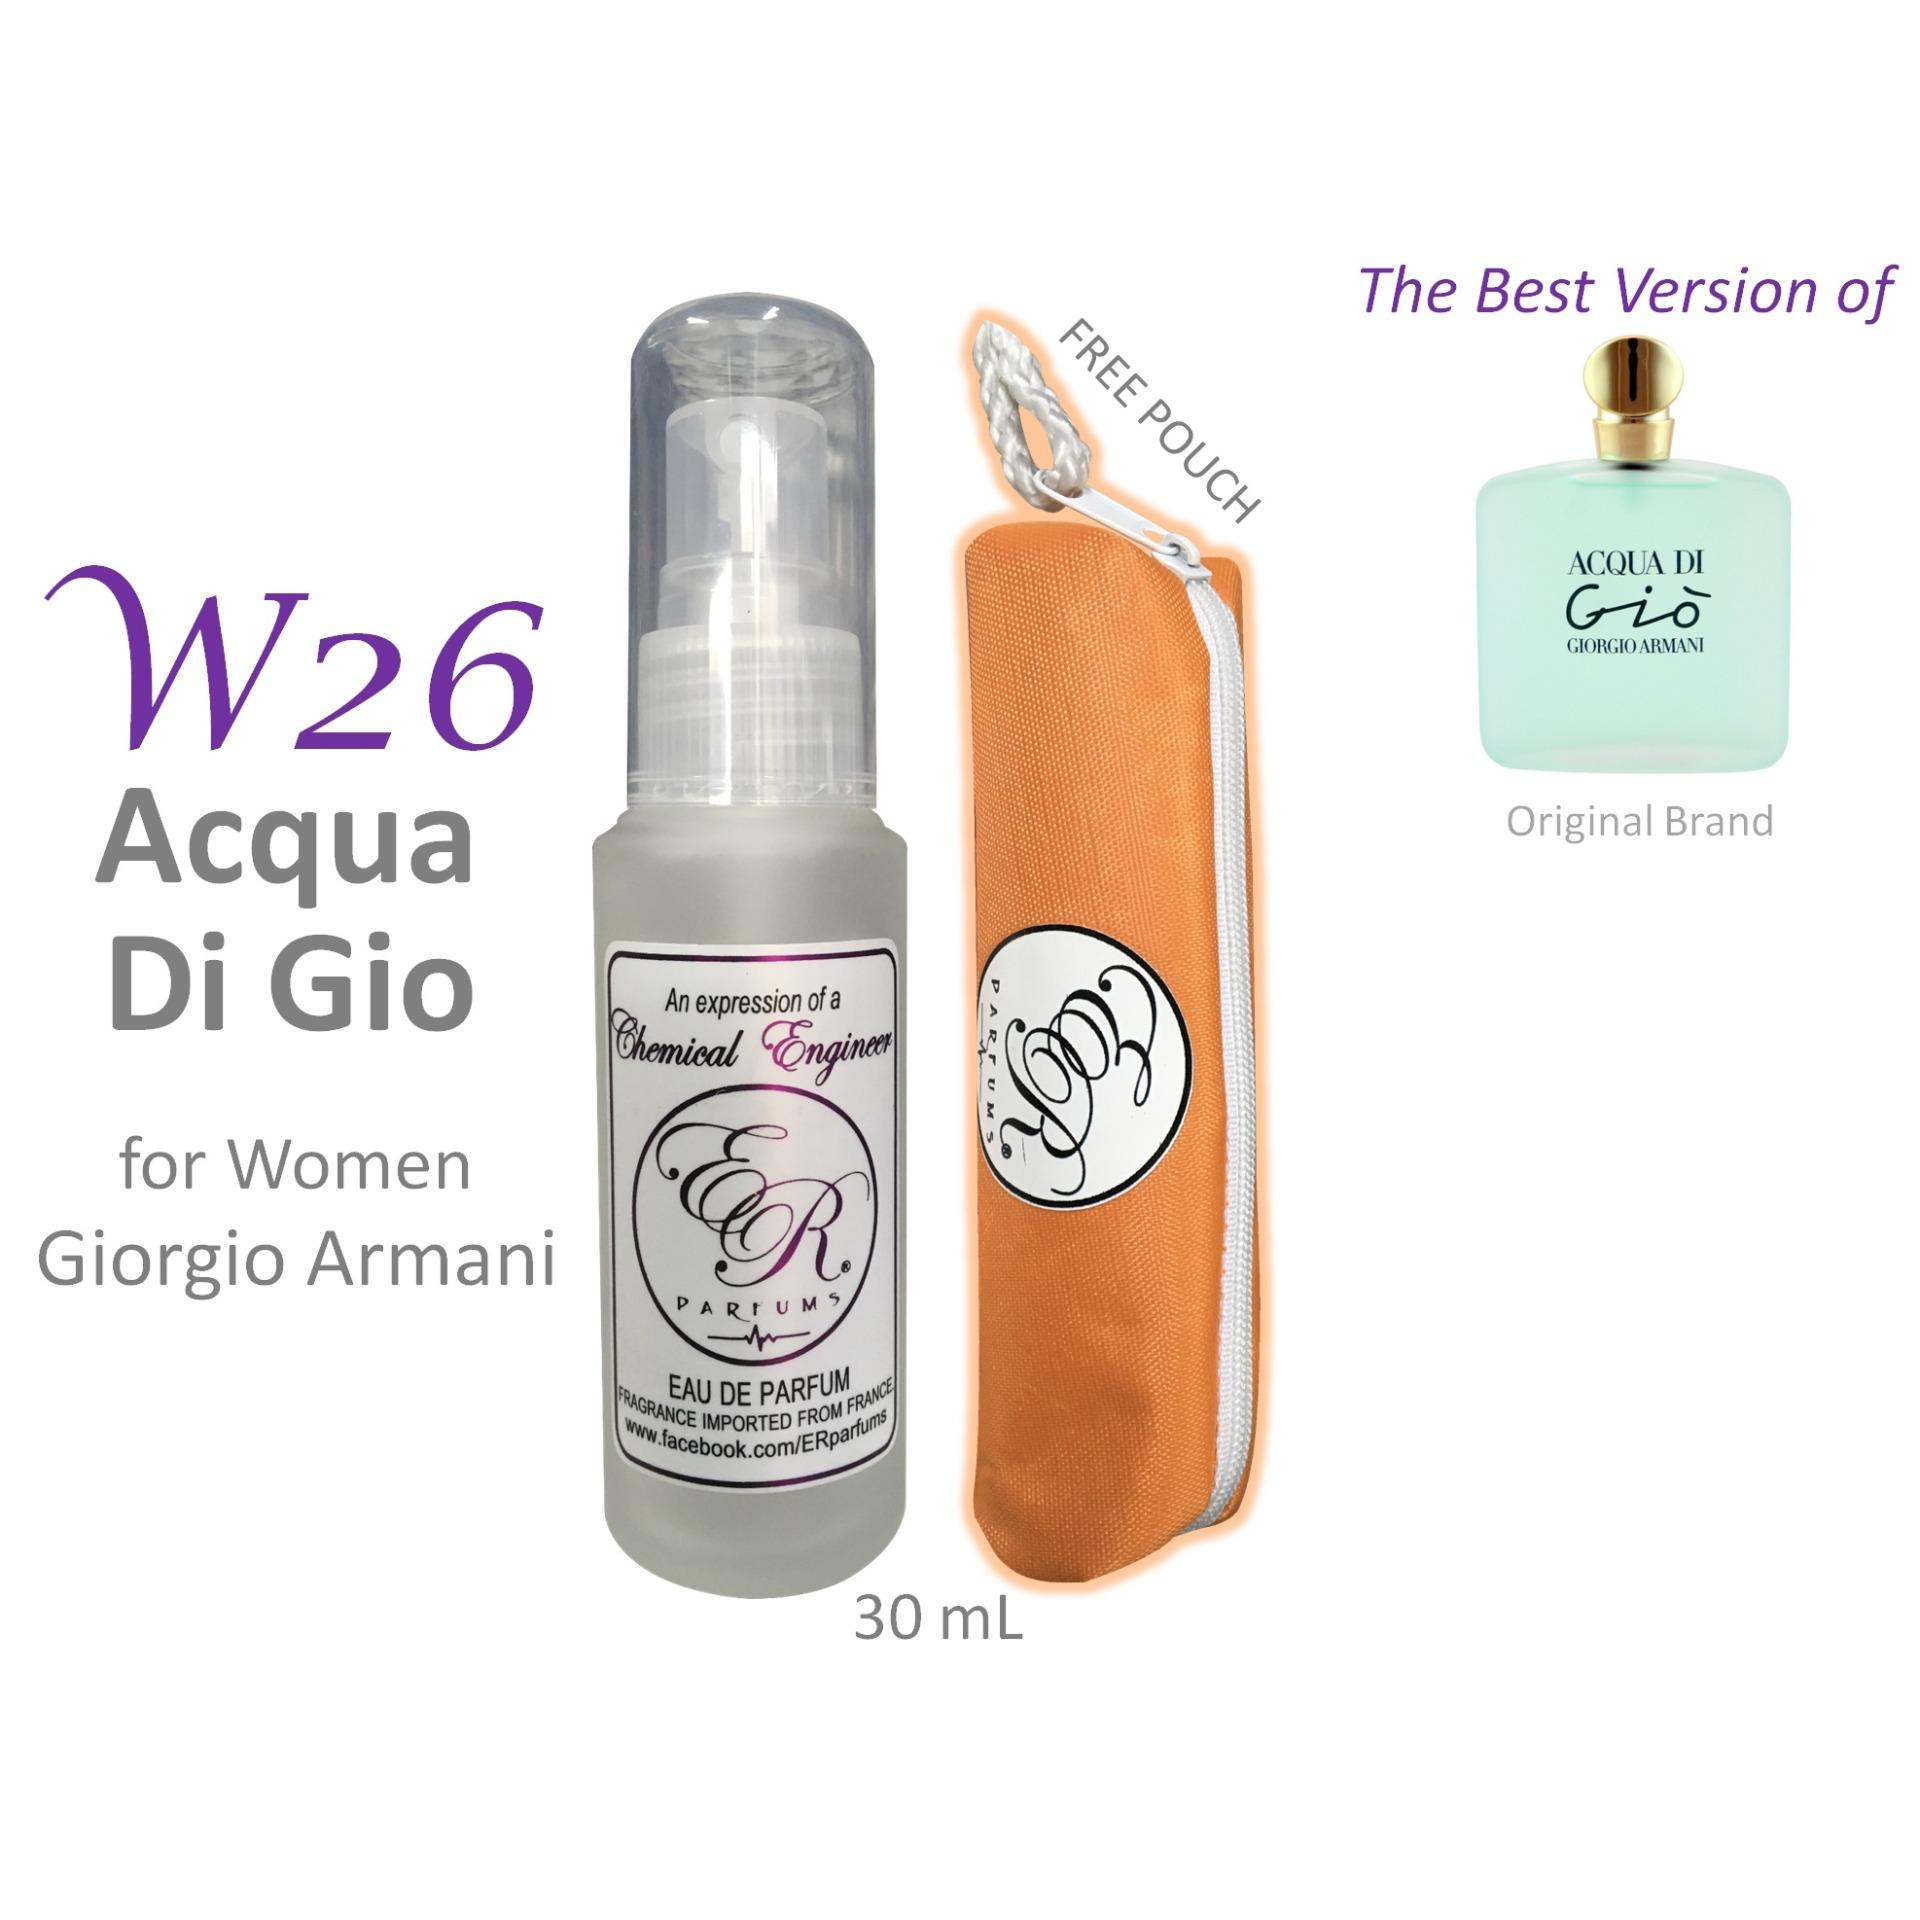 ER PARFUMS W26 Acqua Di Gio for Women by Giorgio Armani 1 piece 30 mL perfume with free pouch - BEST VERSION